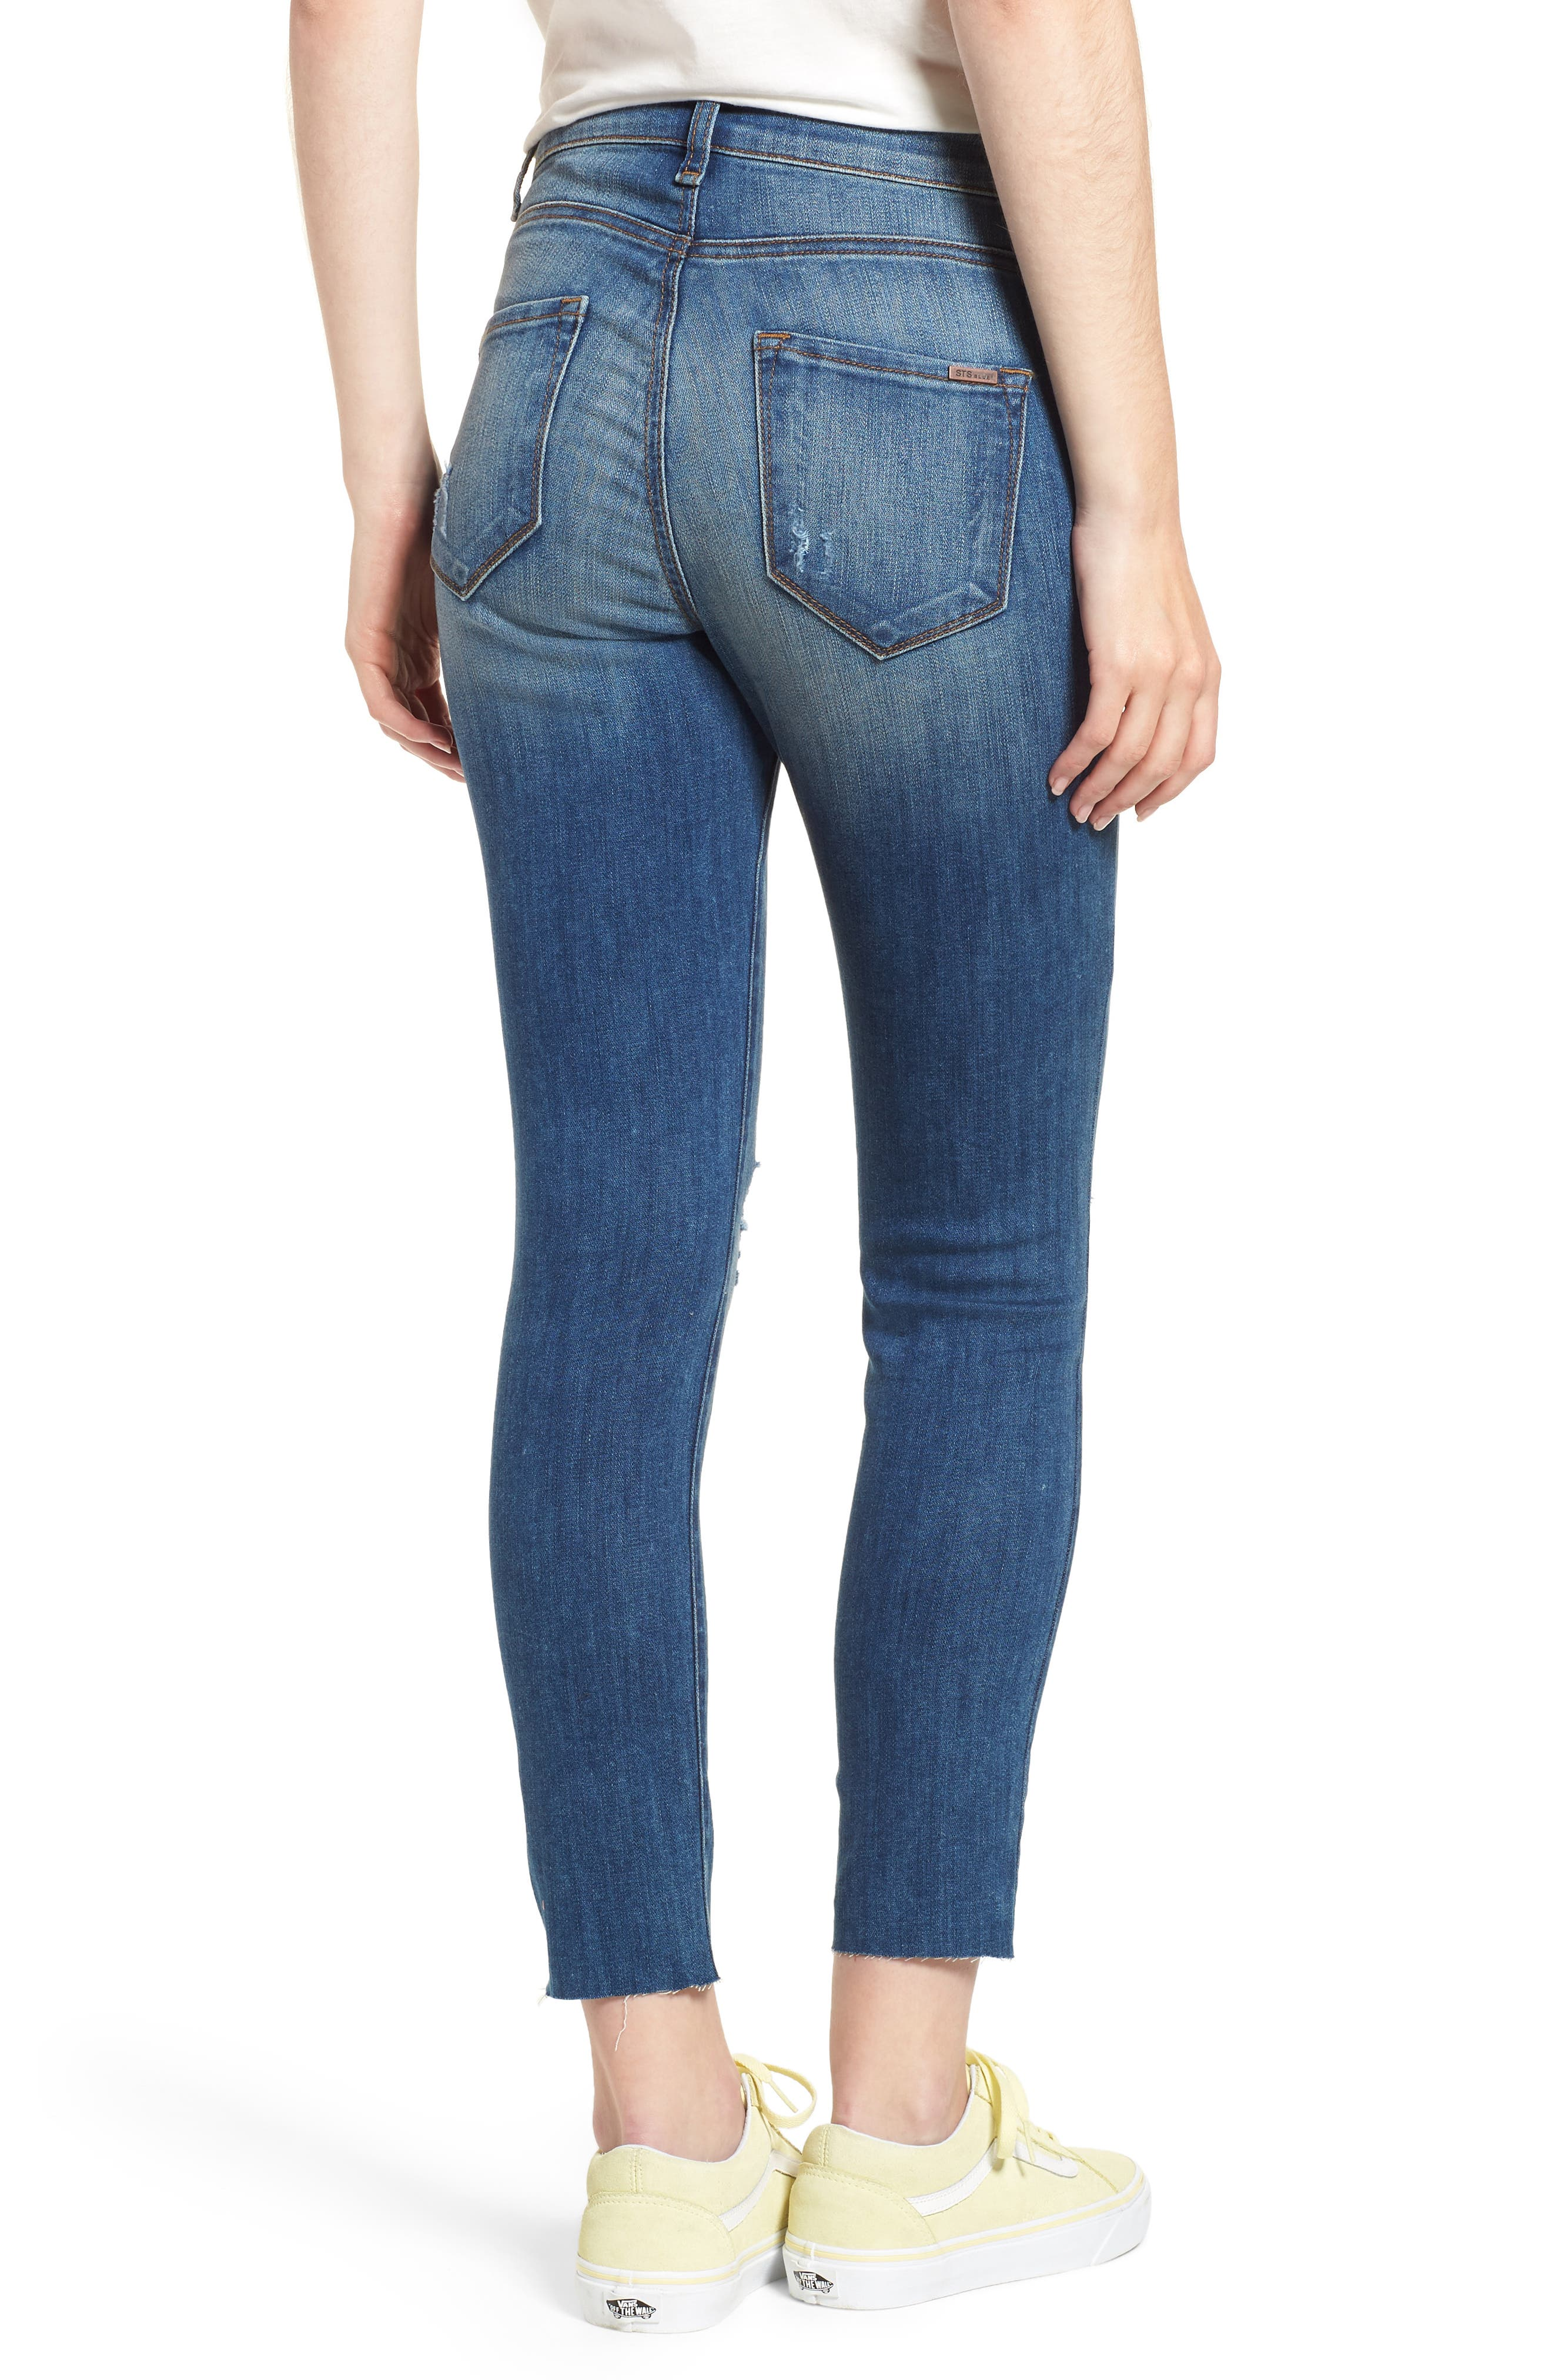 Ellie Ripped High Rise Cropped Jeans,                             Alternate thumbnail 2, color,                             Lamont W/ Med Ba